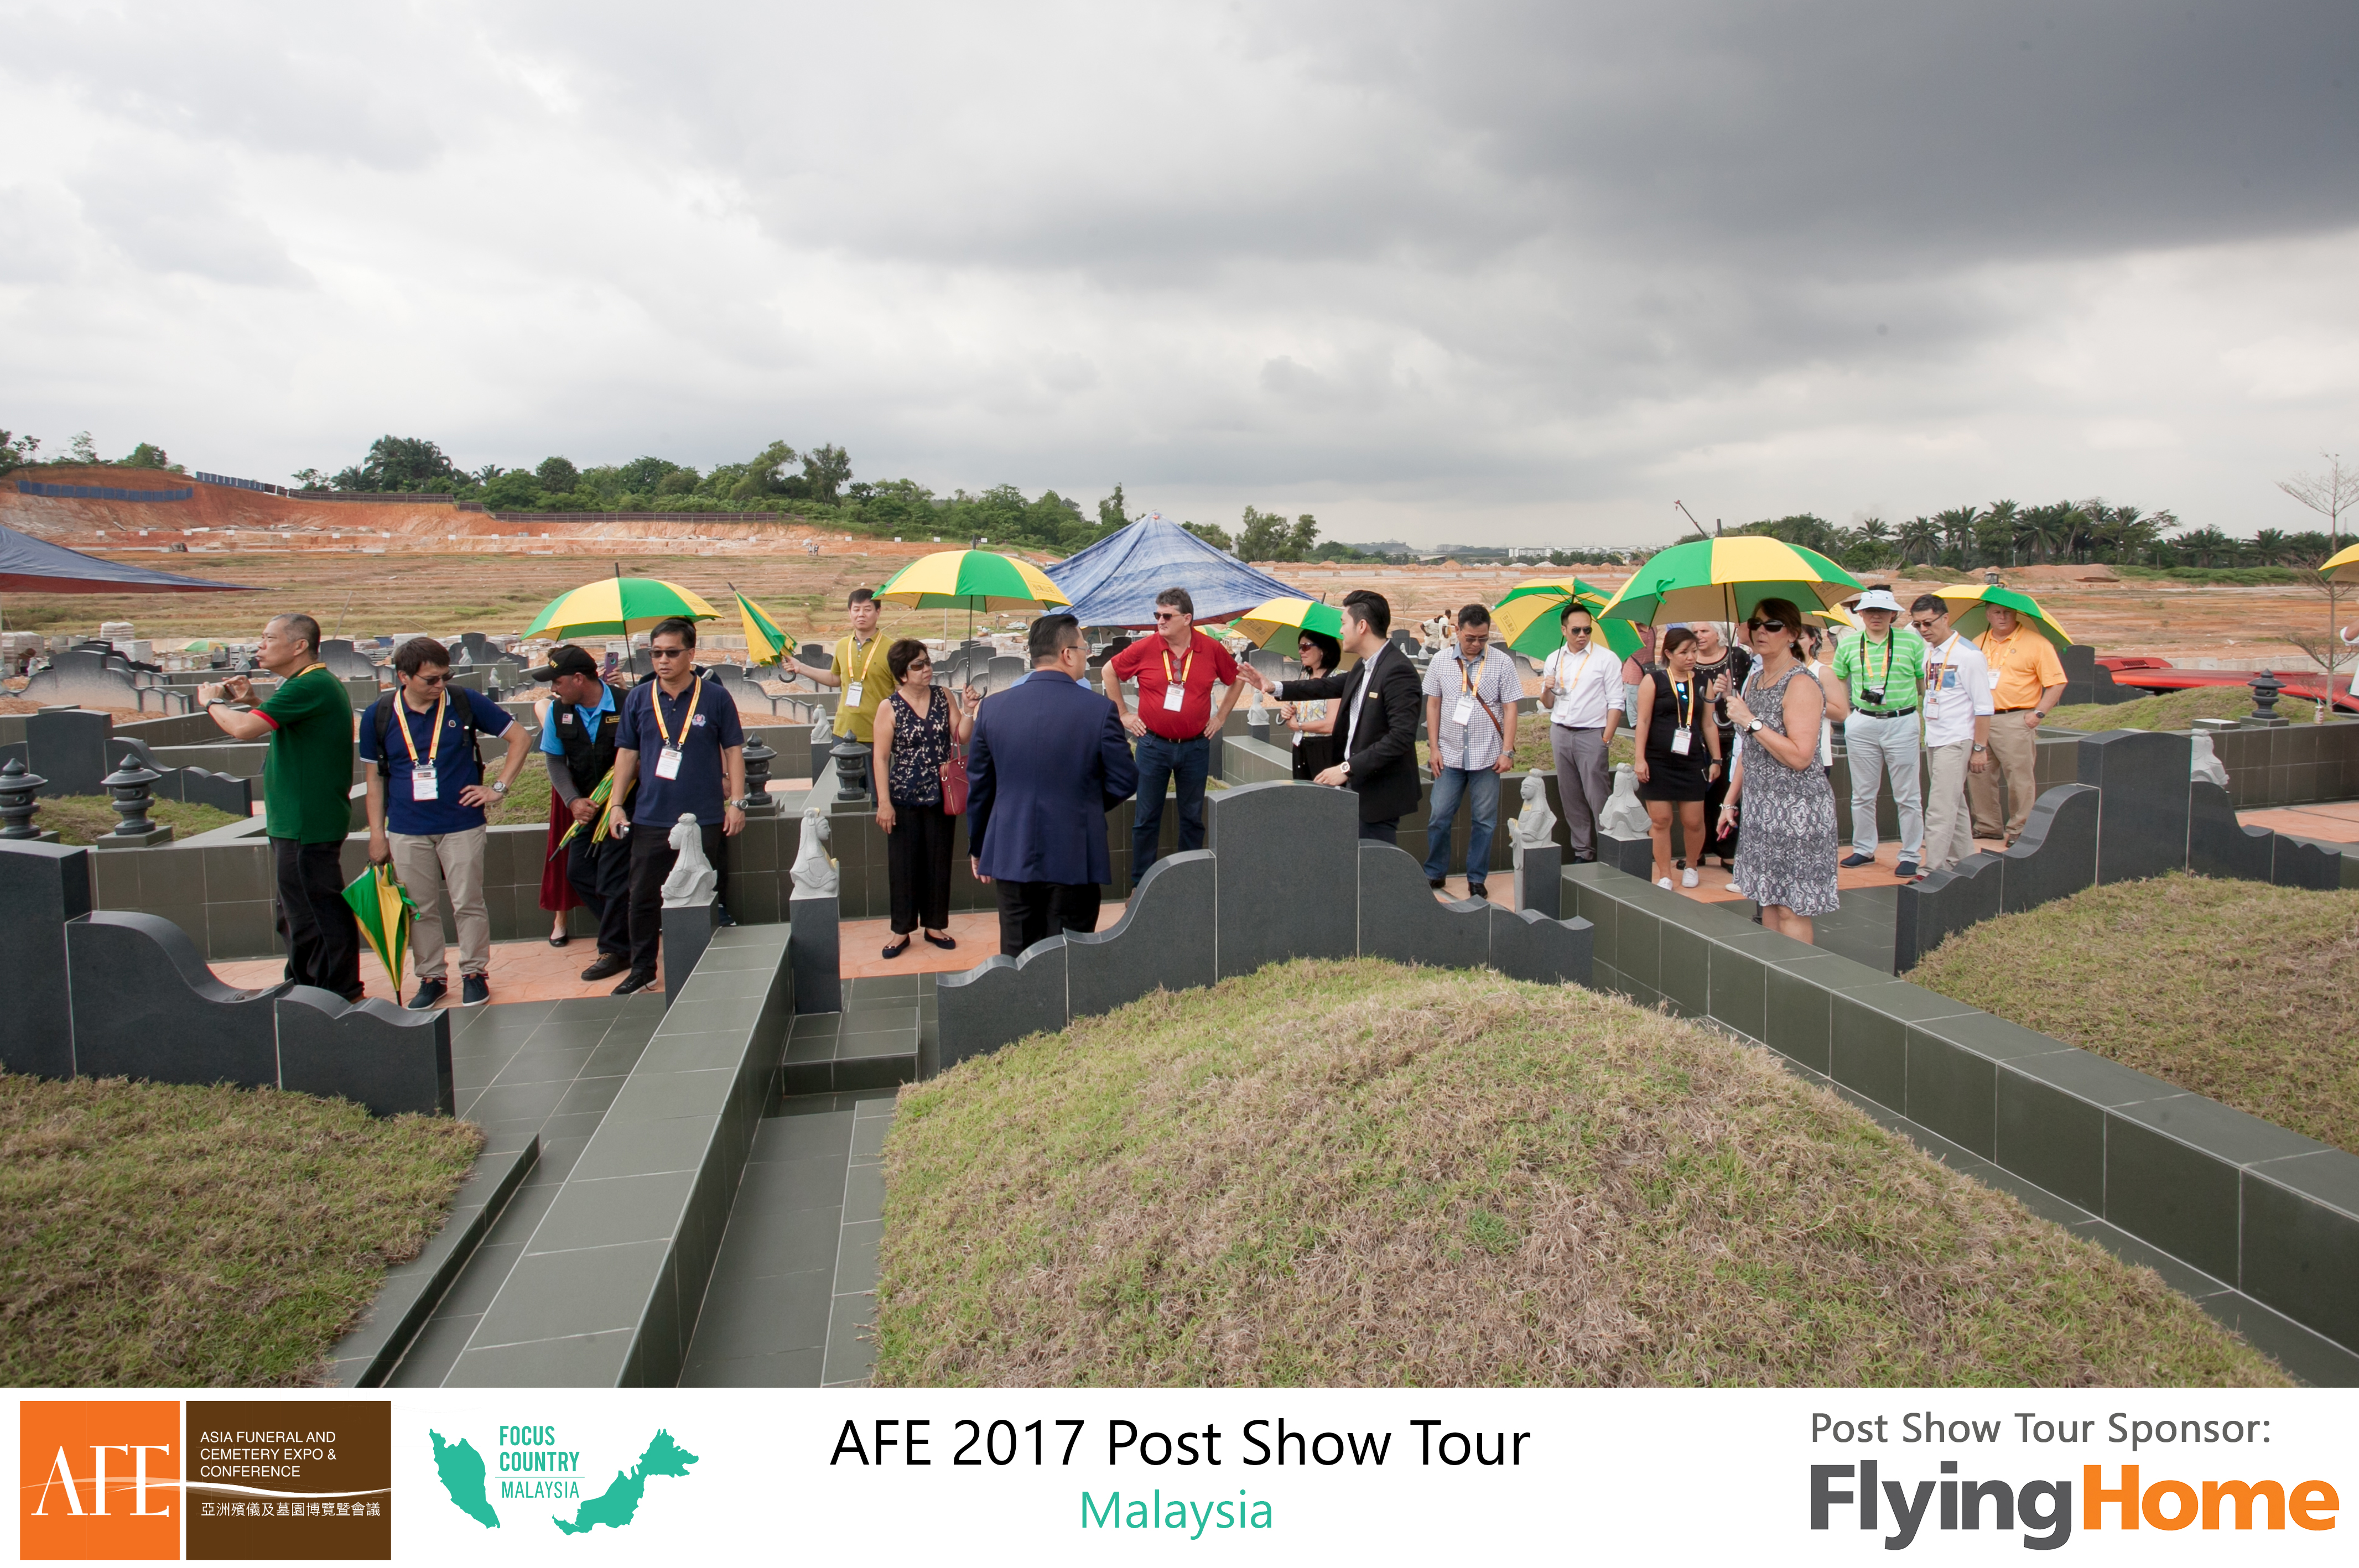 AFE Post Show Tour 2017 Day 4 - 43